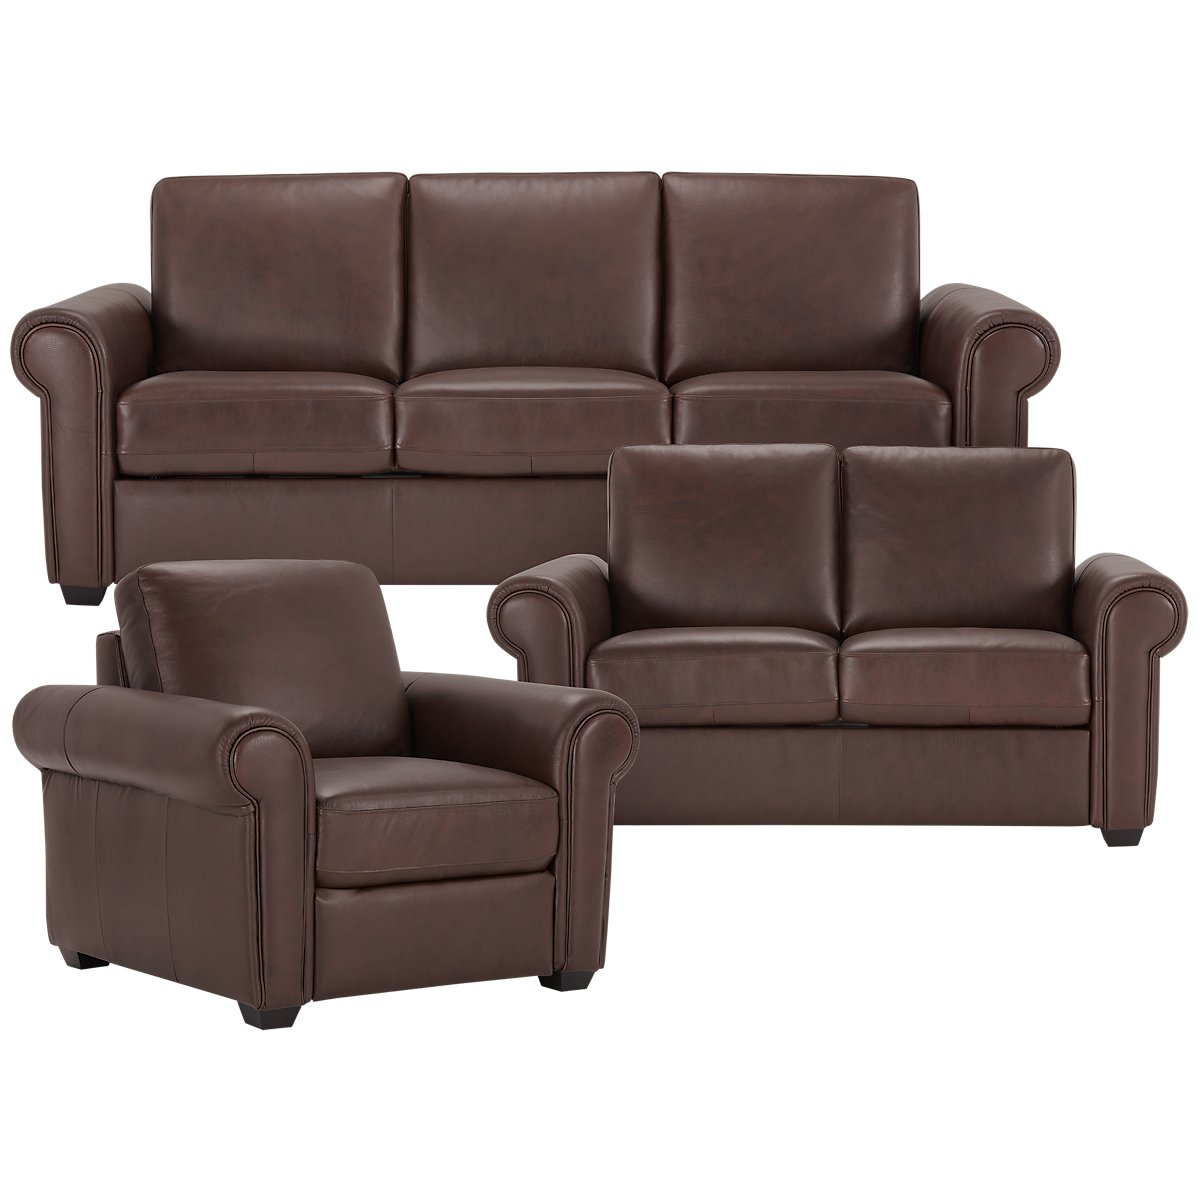 City Furniture Lincoln Medium Brown Leather Vinyl